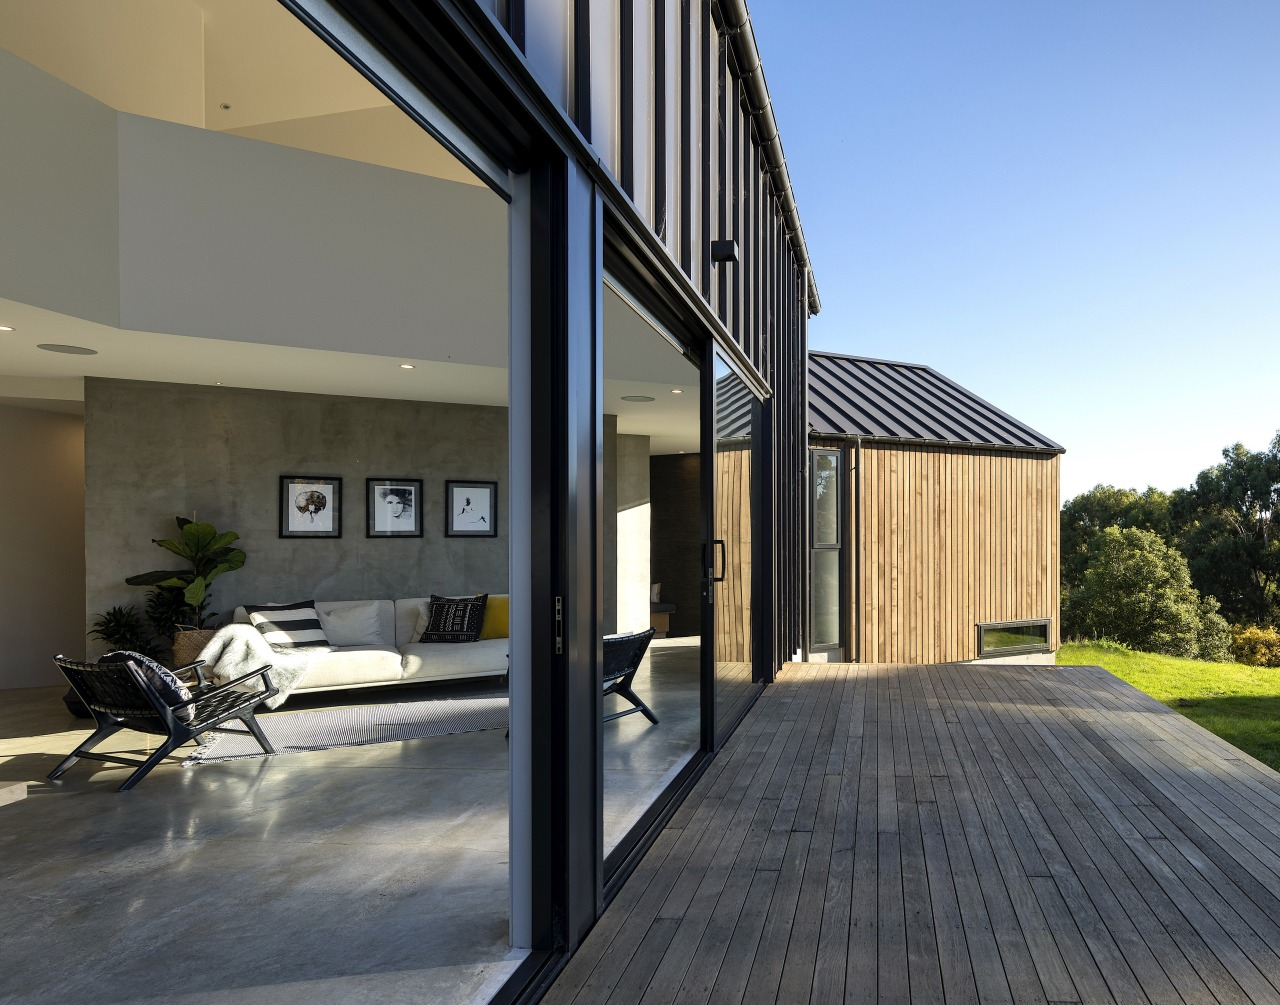 The main ground floor steps gently down the apartment, architecture, building, concrete, courtyard, deck, design, estate, facade, floor, home, house, interior design, property, real estate, residential area, roof, siding, wall, wood, gray, black